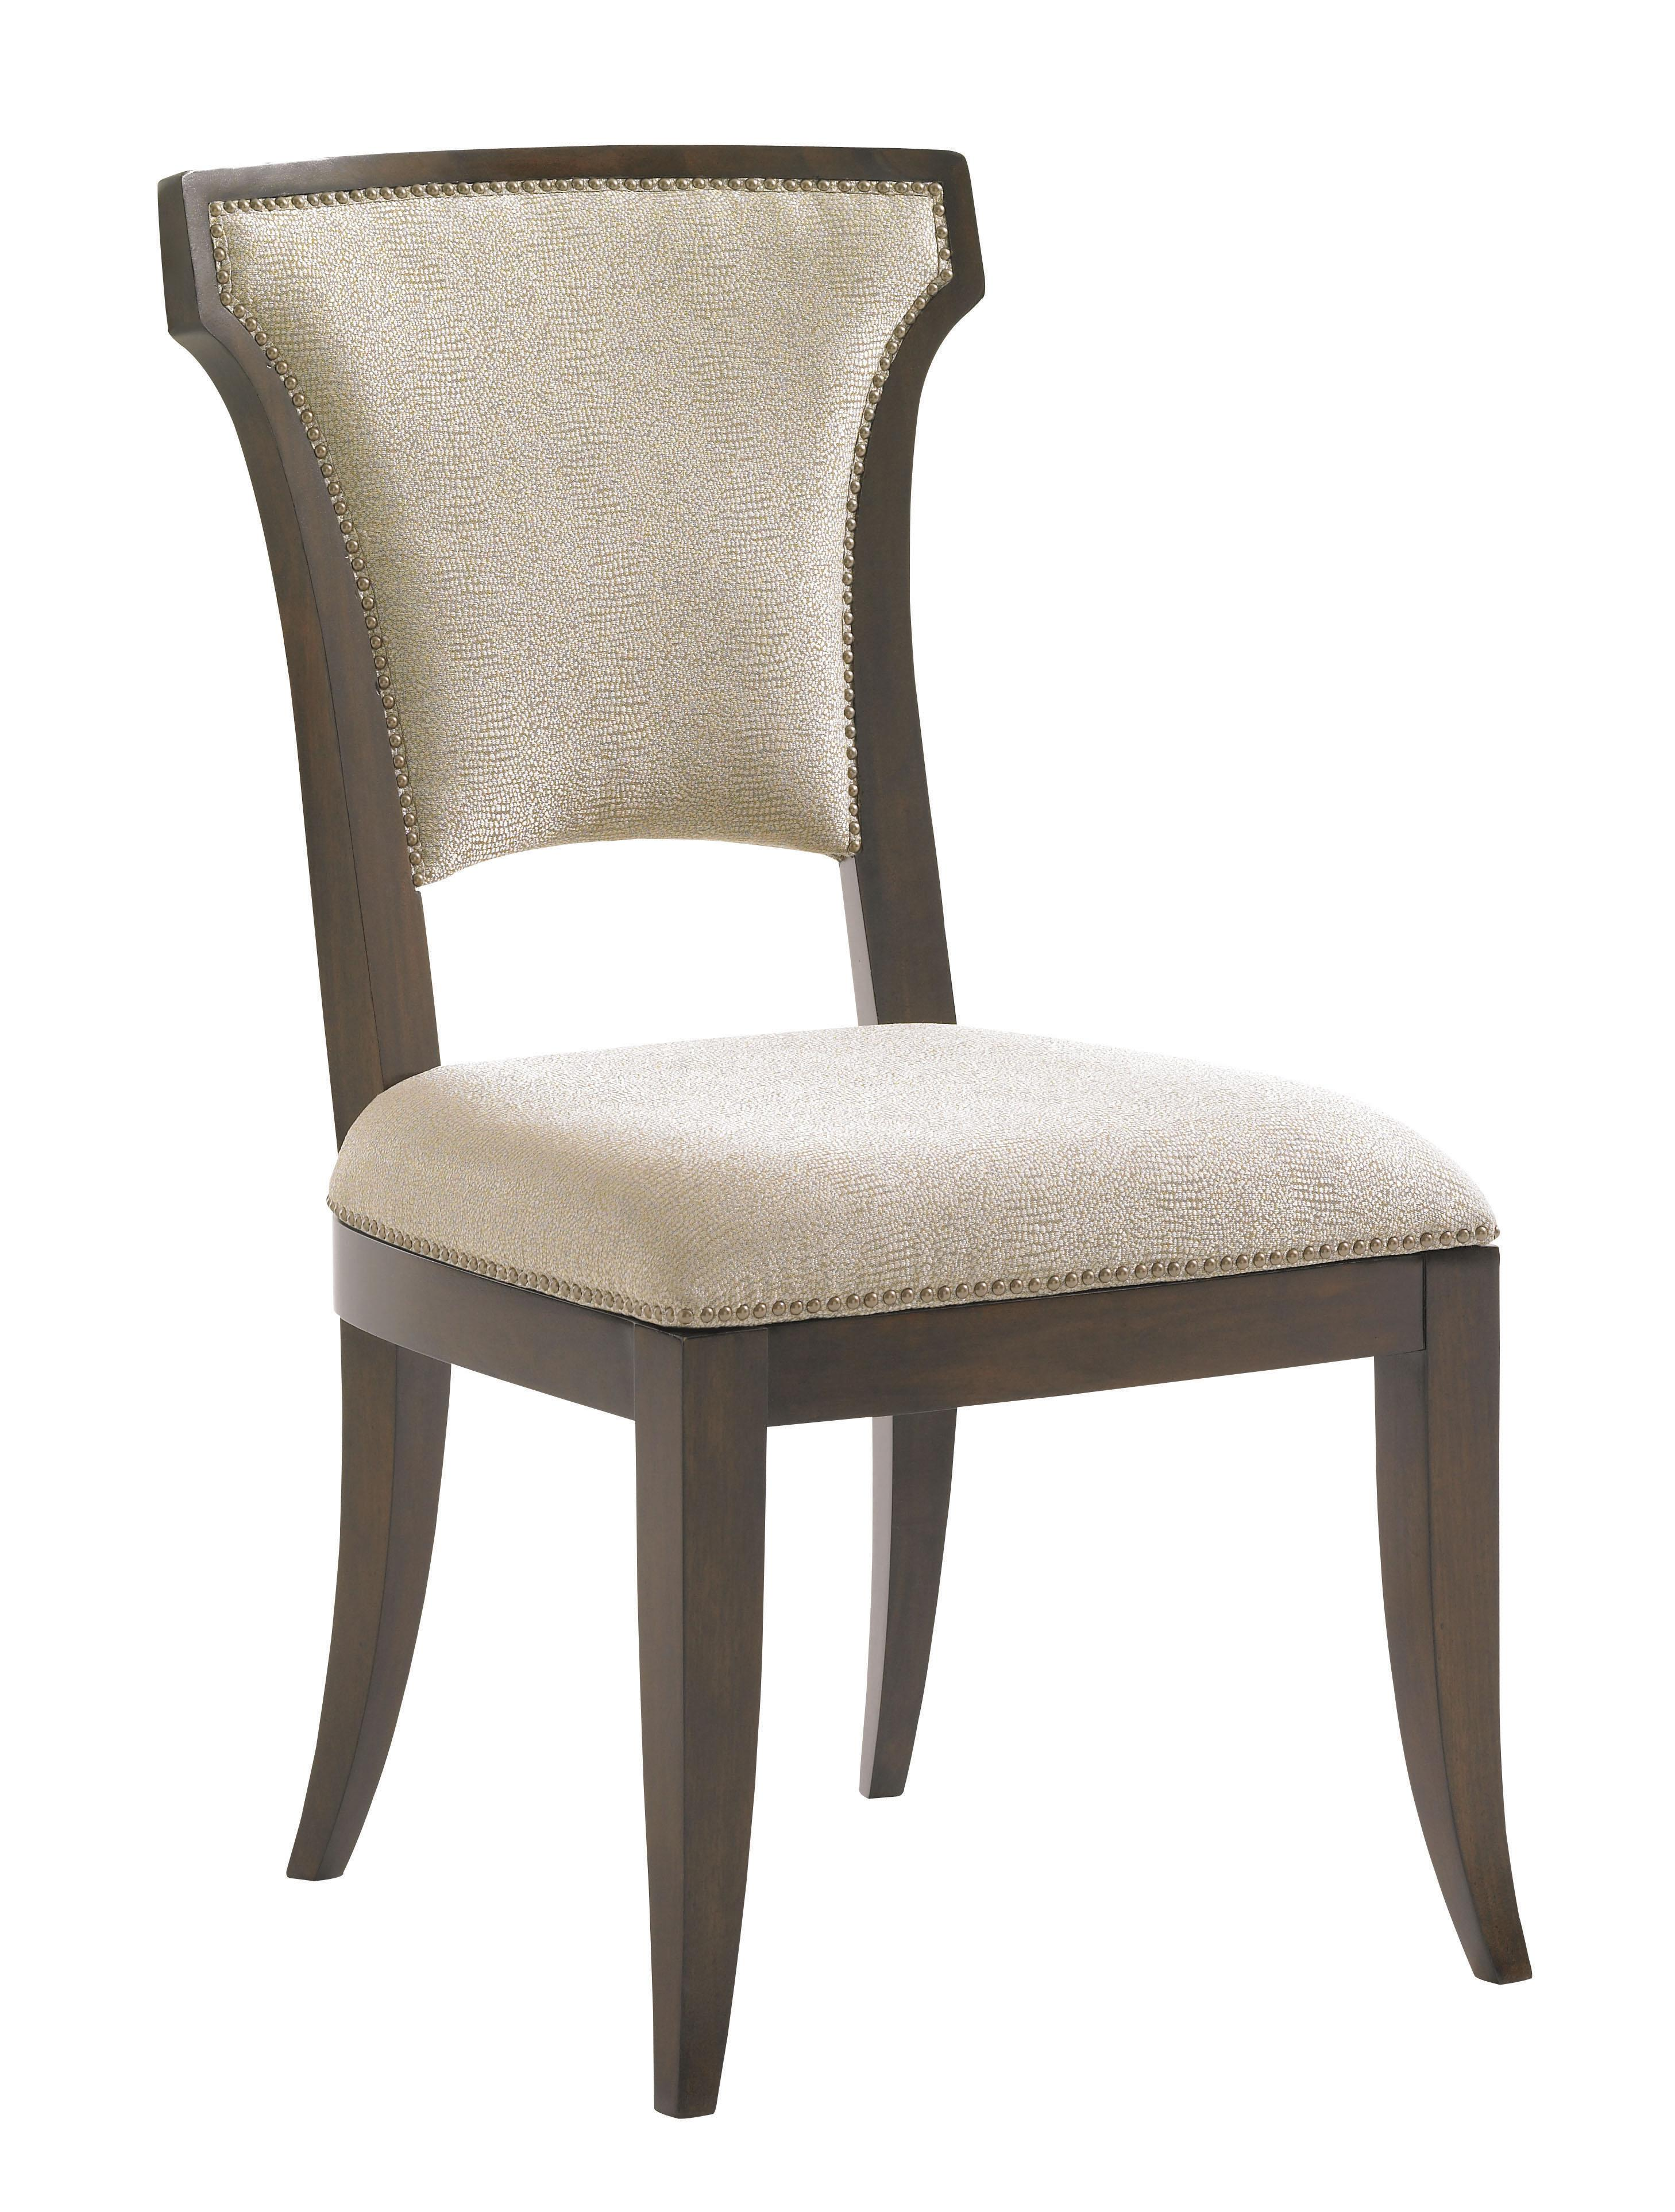 Seneca Side Chair w/ Married Fabric